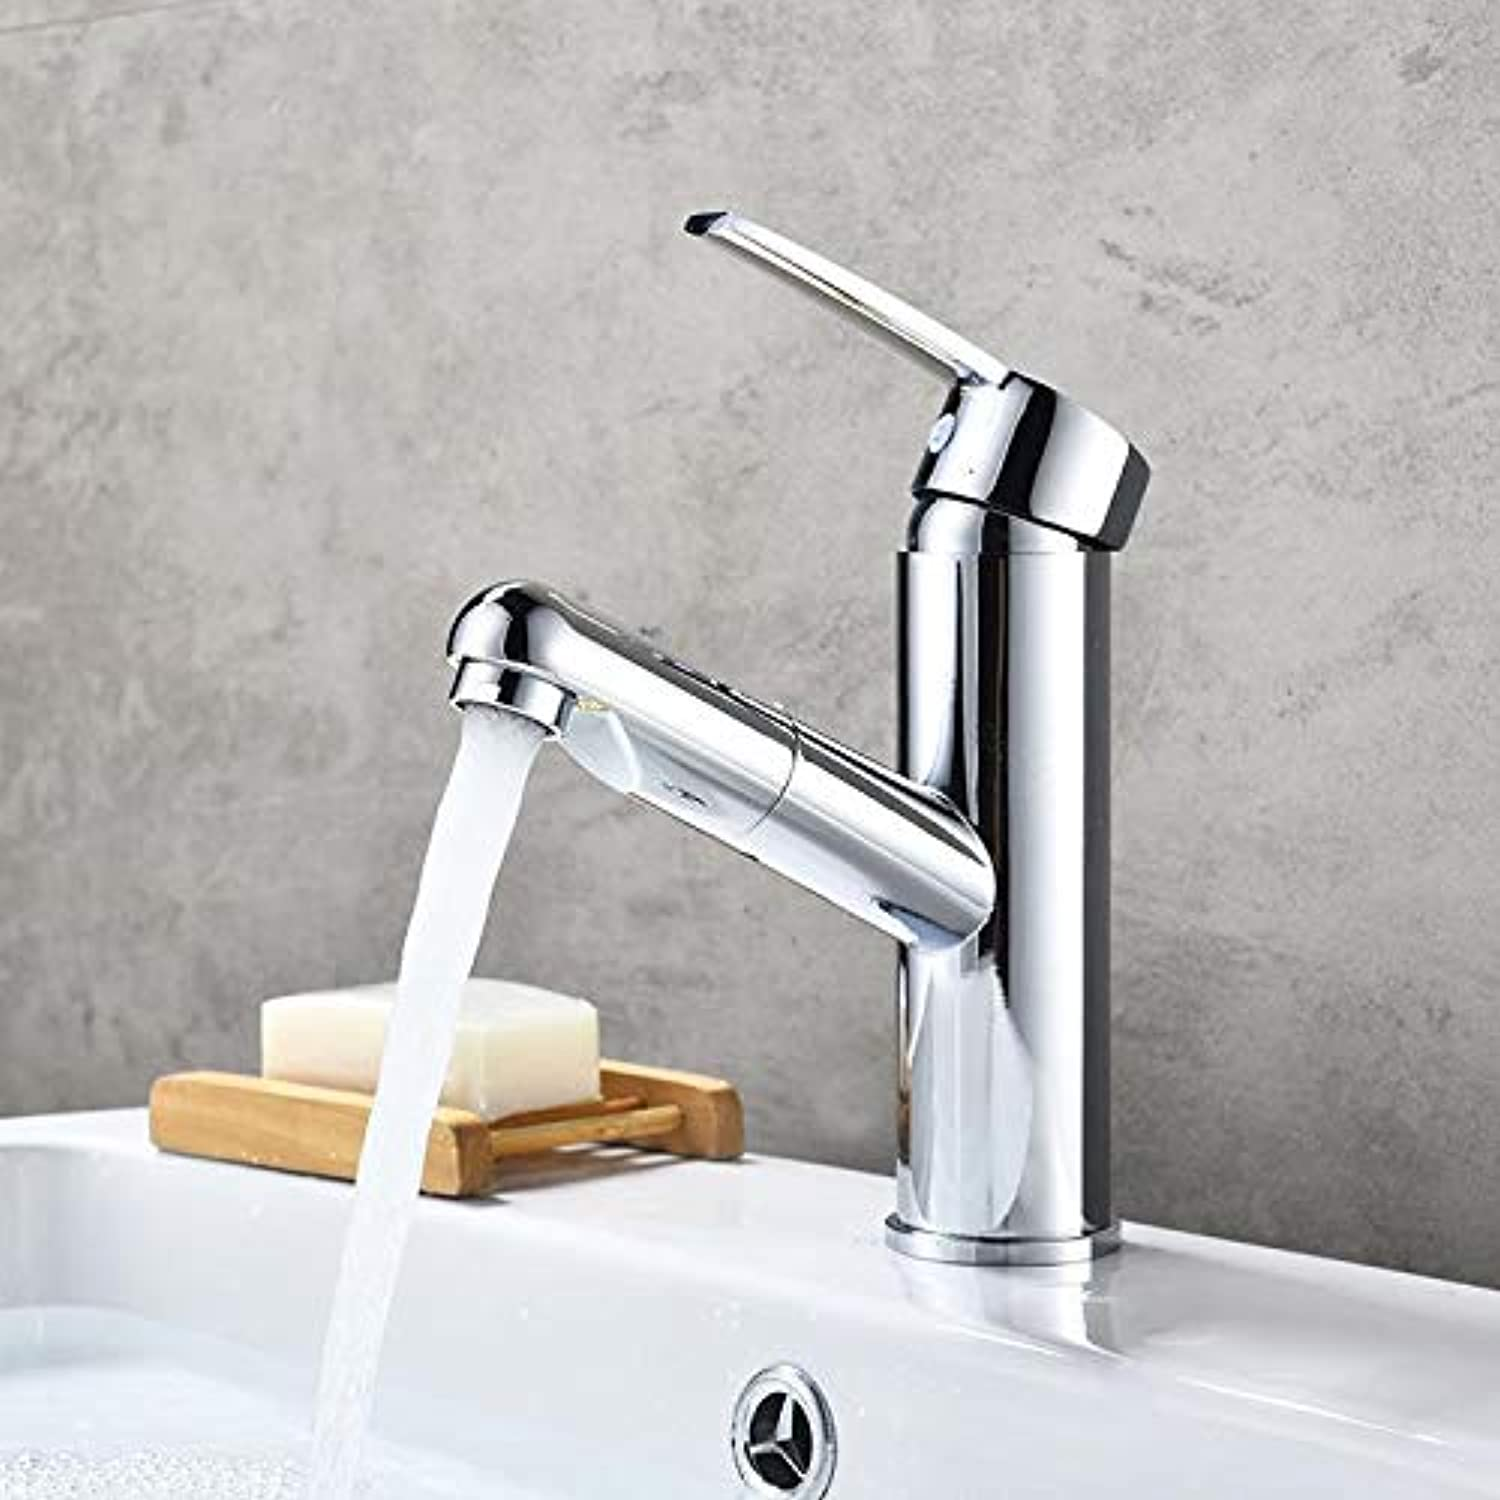 Taps Faucet All Copper Pullable Basin Faucet Washbasin Hot and Cold Water Retractable Bathroom Cabinet Pull-Out Faucet